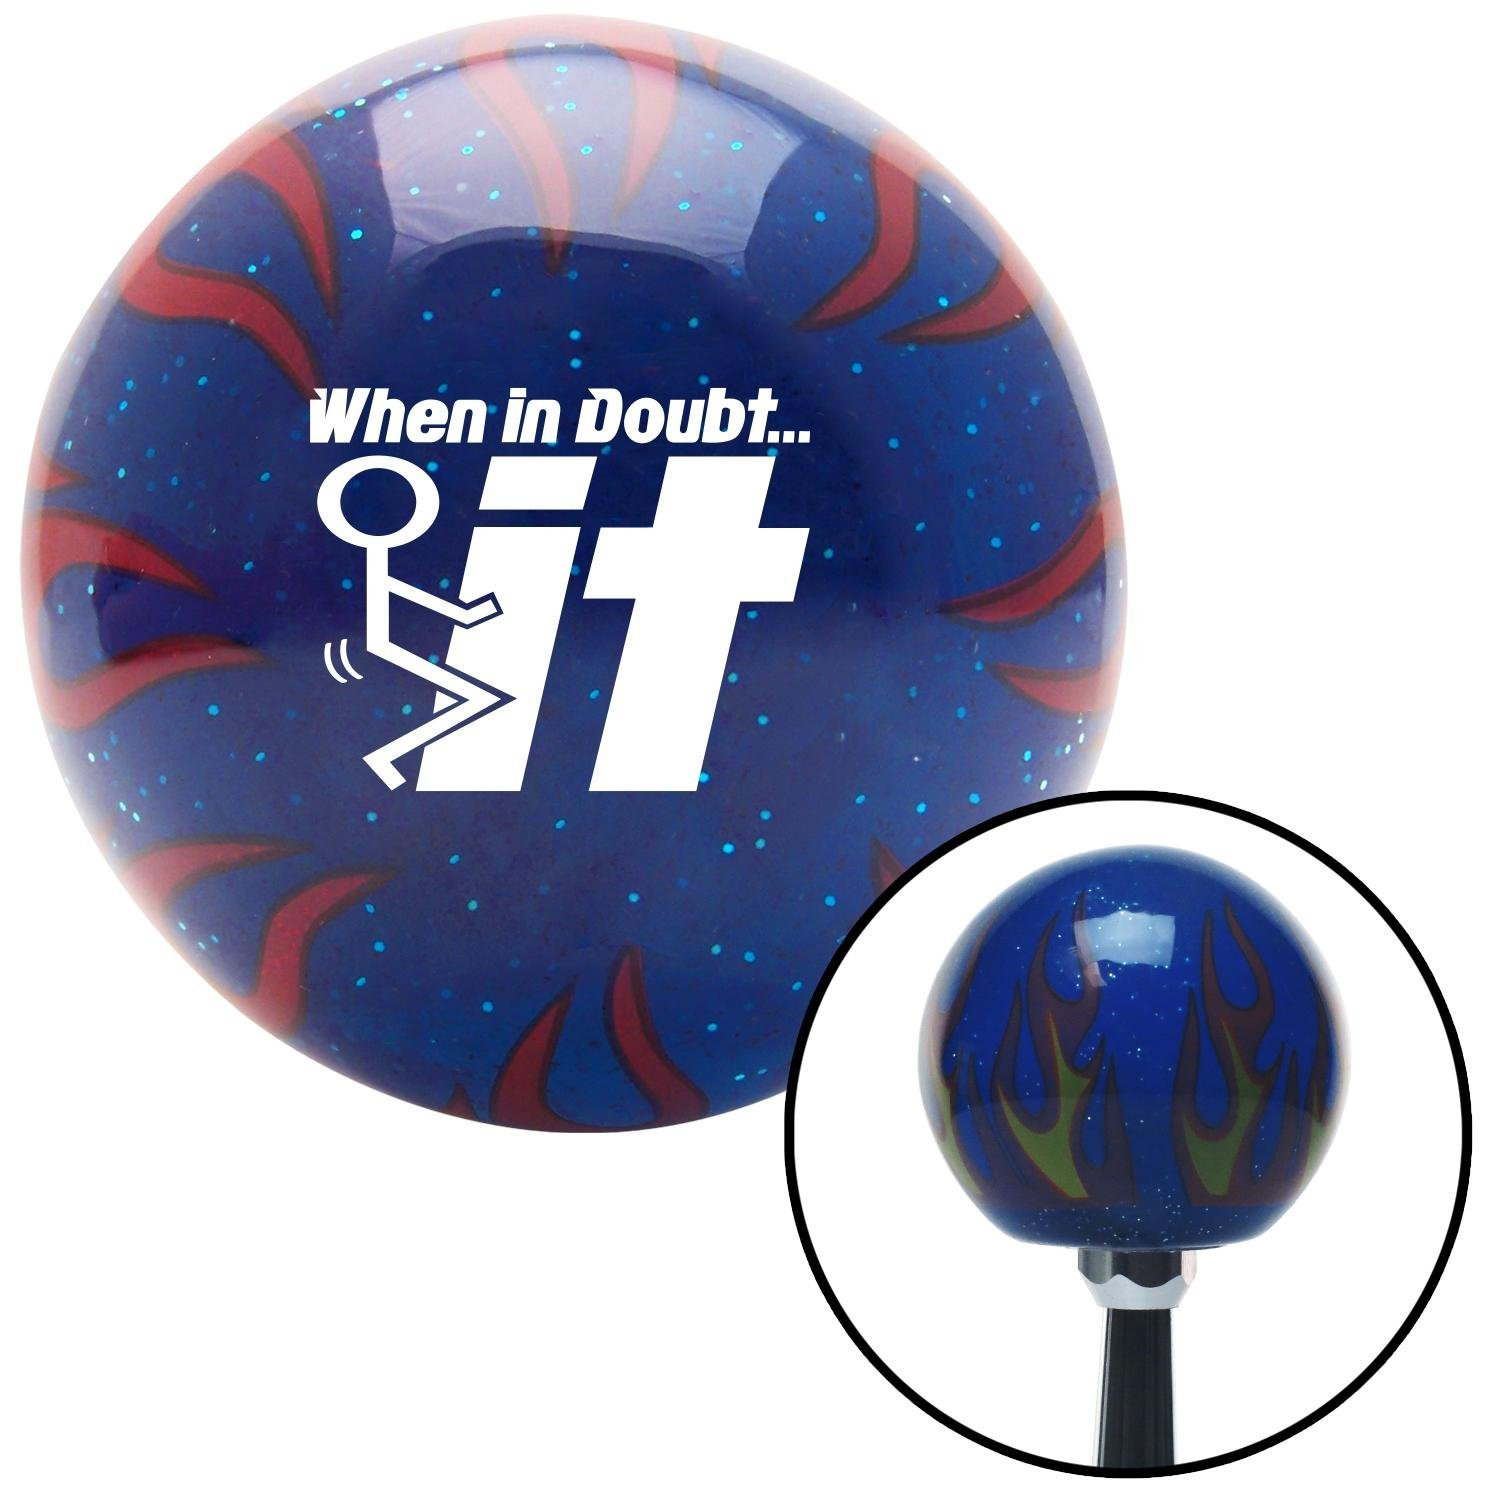 American Shifter 251732 Blue Flame Metal Flake Shift Knob with M16 x 1.5 Insert White When in Doubt